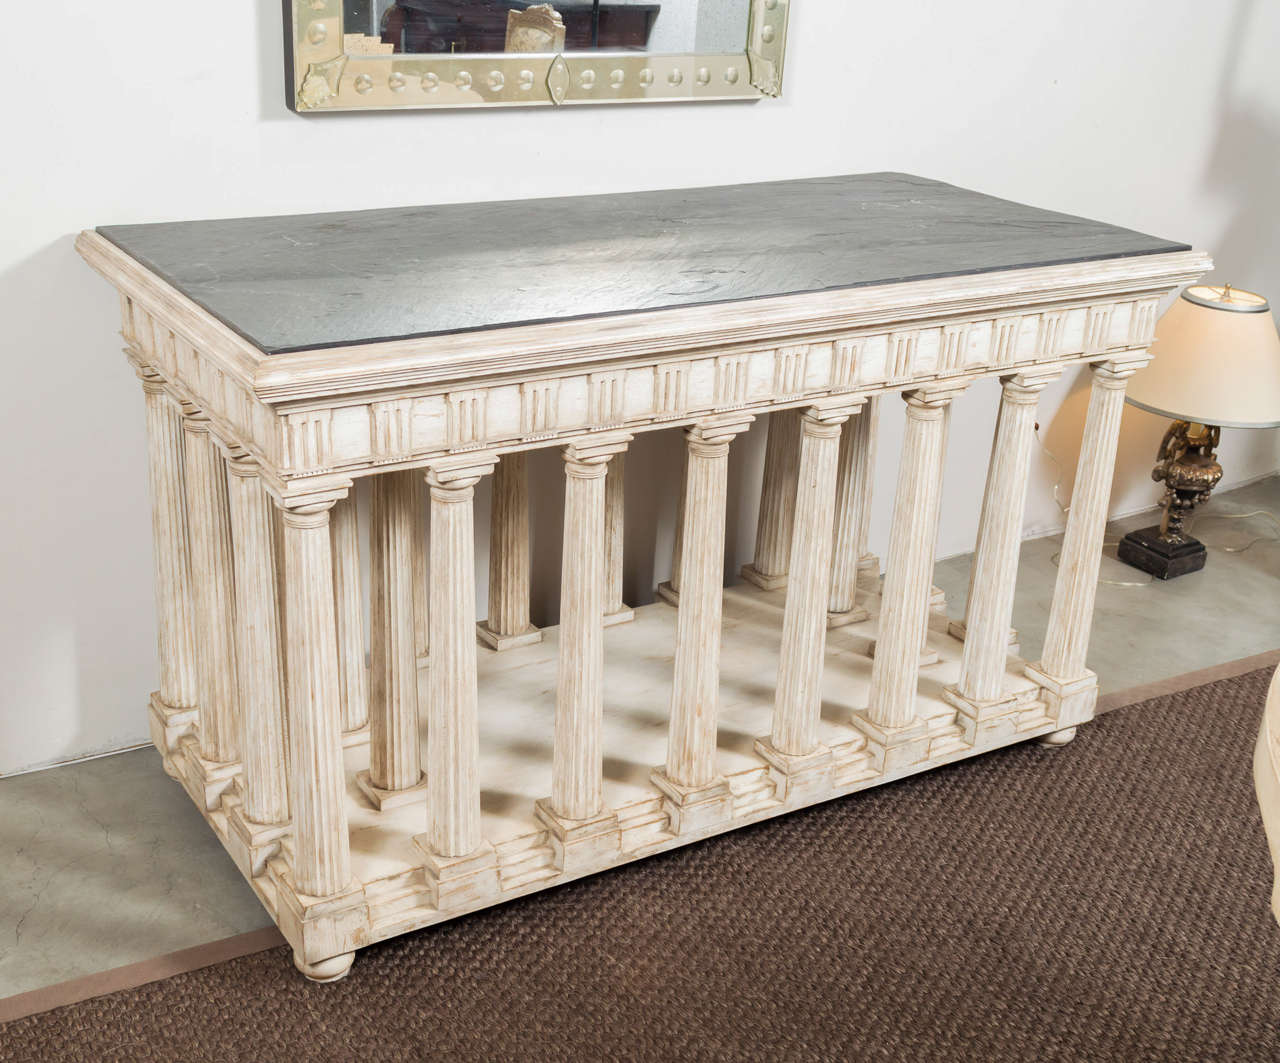 Hand-painted and antiqued slate top architectural center table. Rectangular charcoal slate top raised on a base in the form of a classical temple, the frieze of traditional form with triglyphs and metopes raised on a series of fluted Doric column